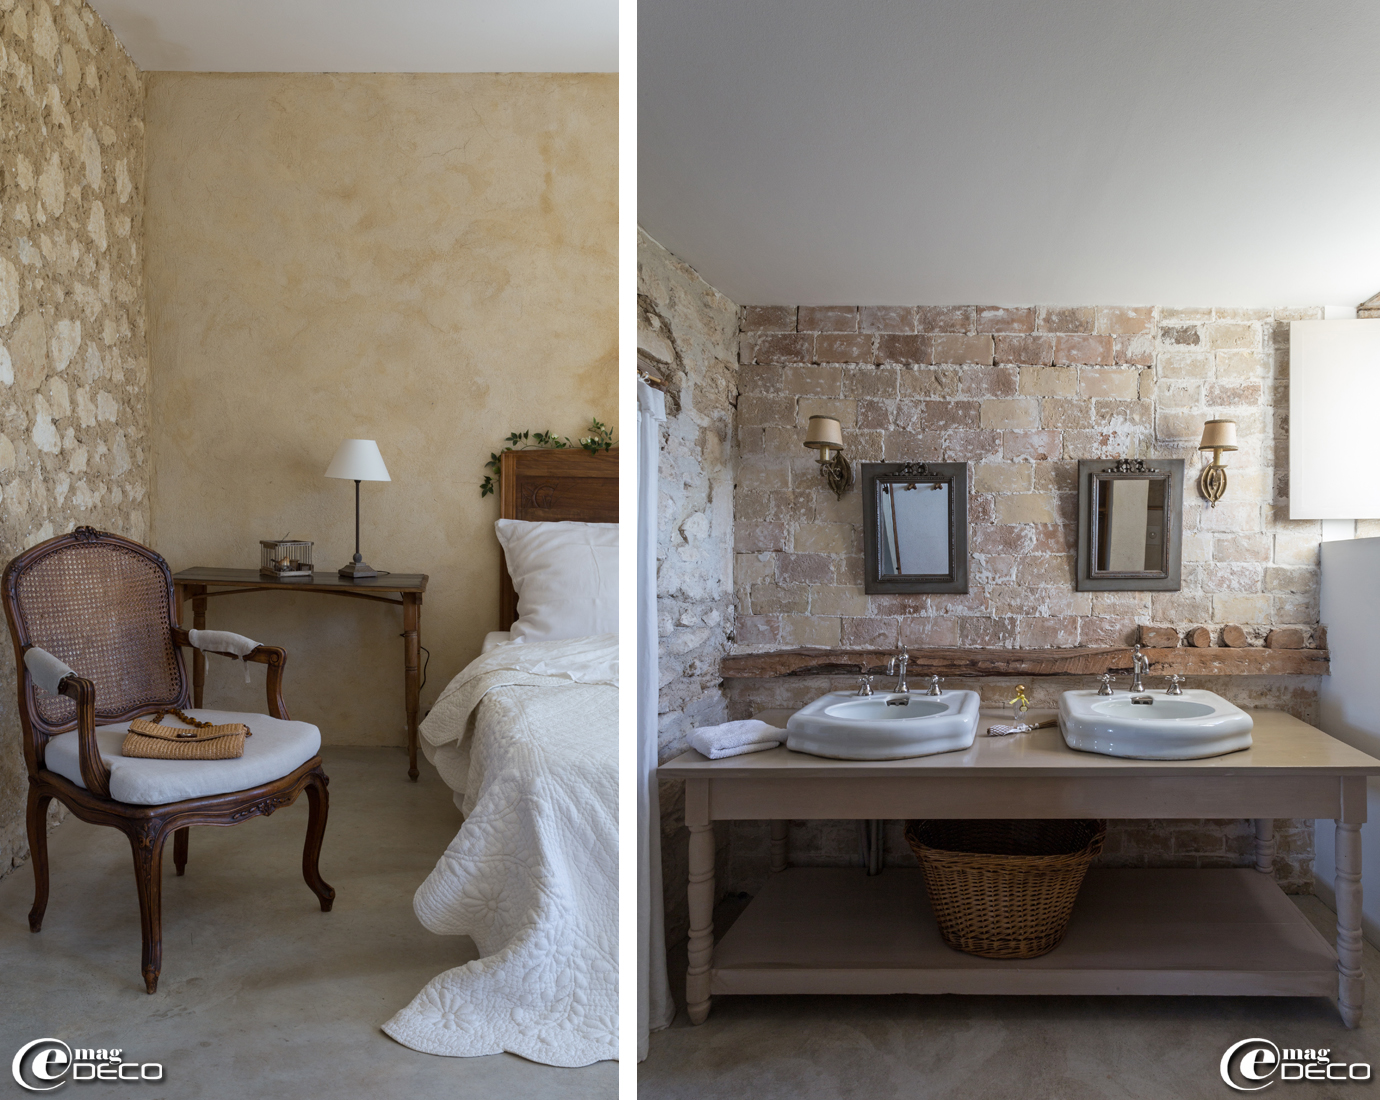 La garance en provence e magdeco magazine de d coration for Decoration interieur maison provencale